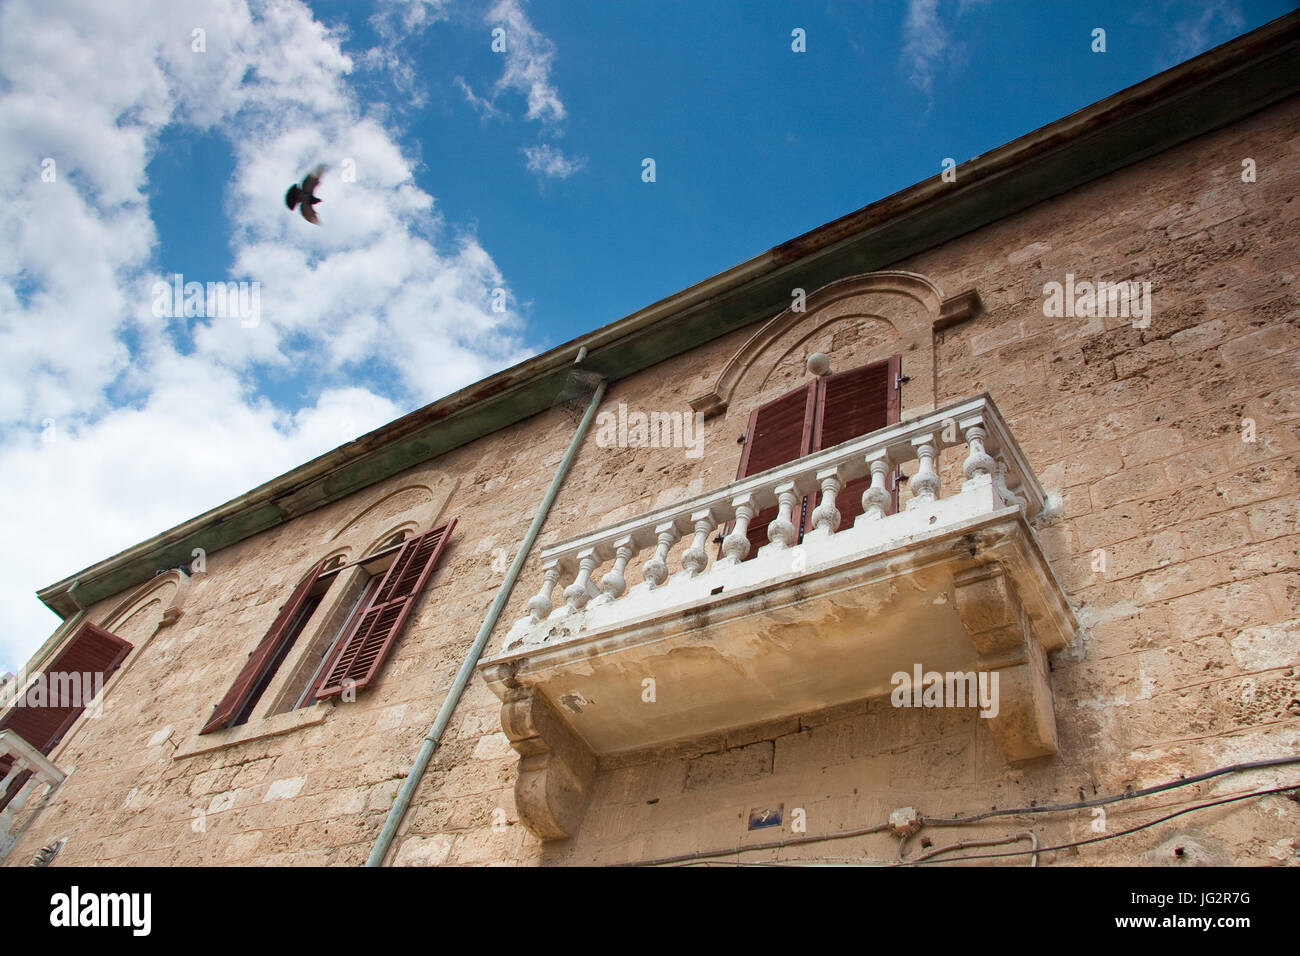 Traditional building with windows and balcony and overflying pigeon in Famagusta, Cyprus - Stock Image